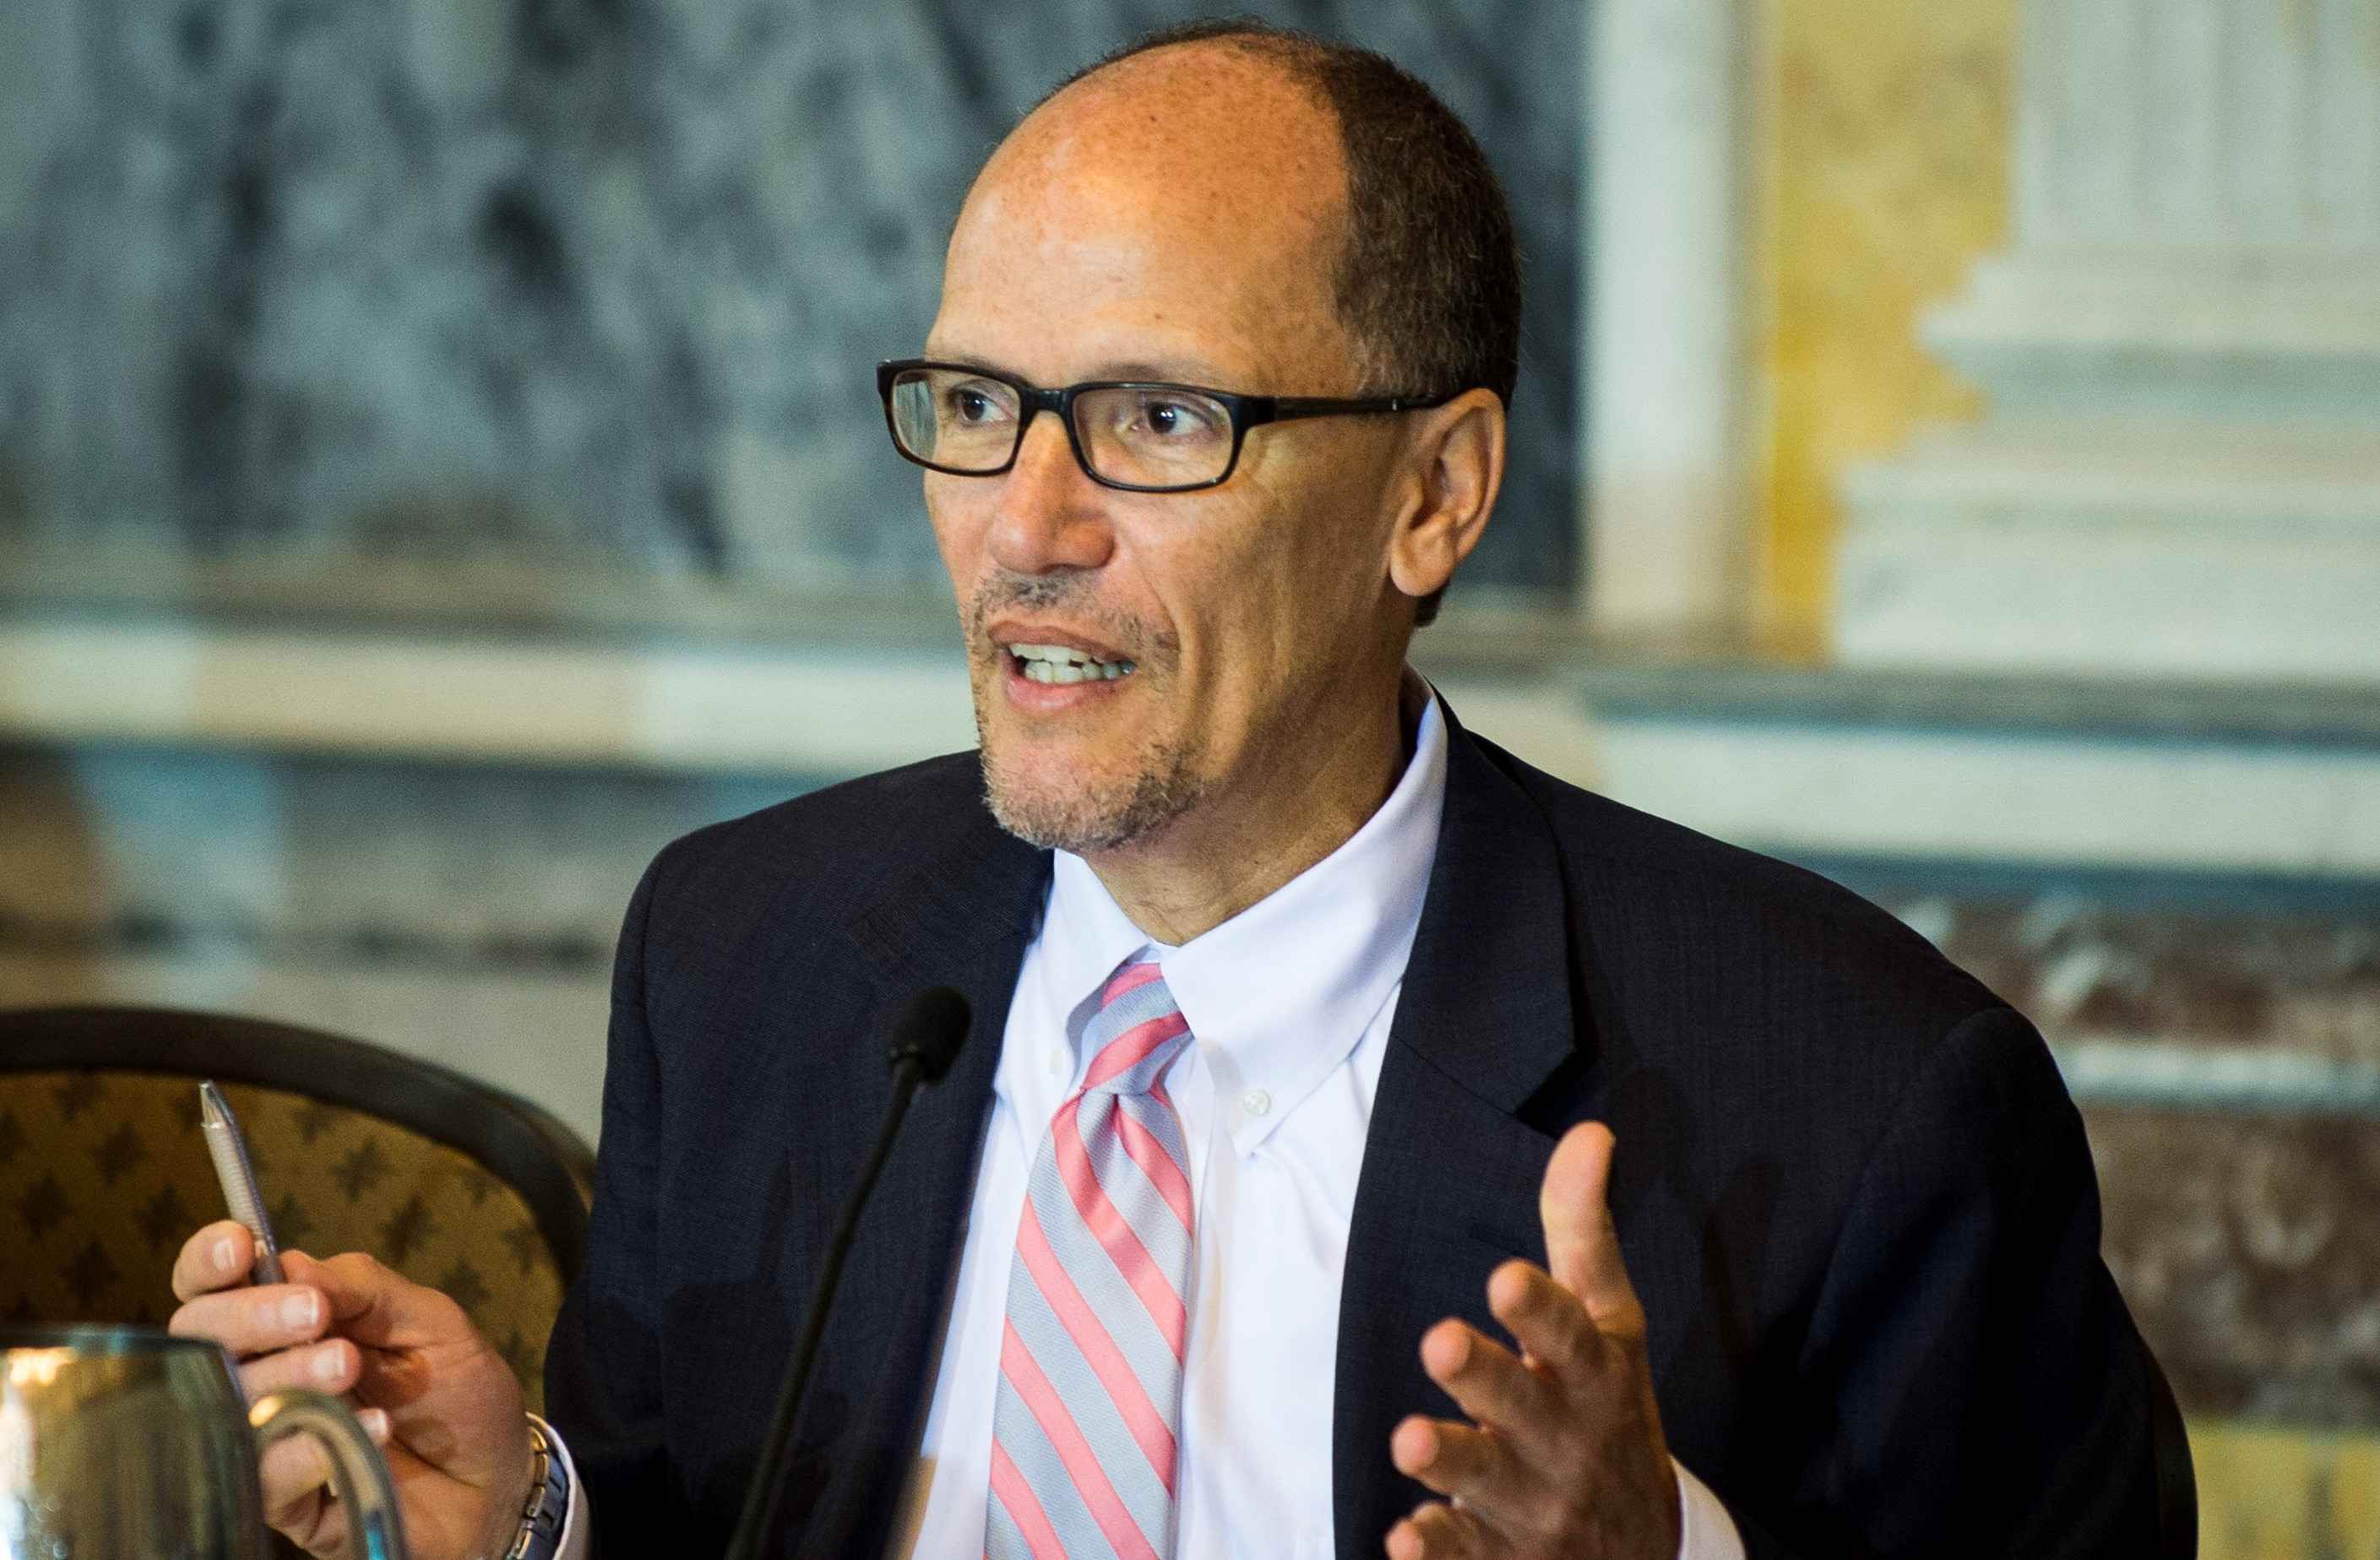 A former Labor secretary with strong connections in the union movement, Thomas E. Perez joined the race after the AFL-CIO and many other Democratic power players had already sided with Rep. Keith Ellison. (Getty Images)